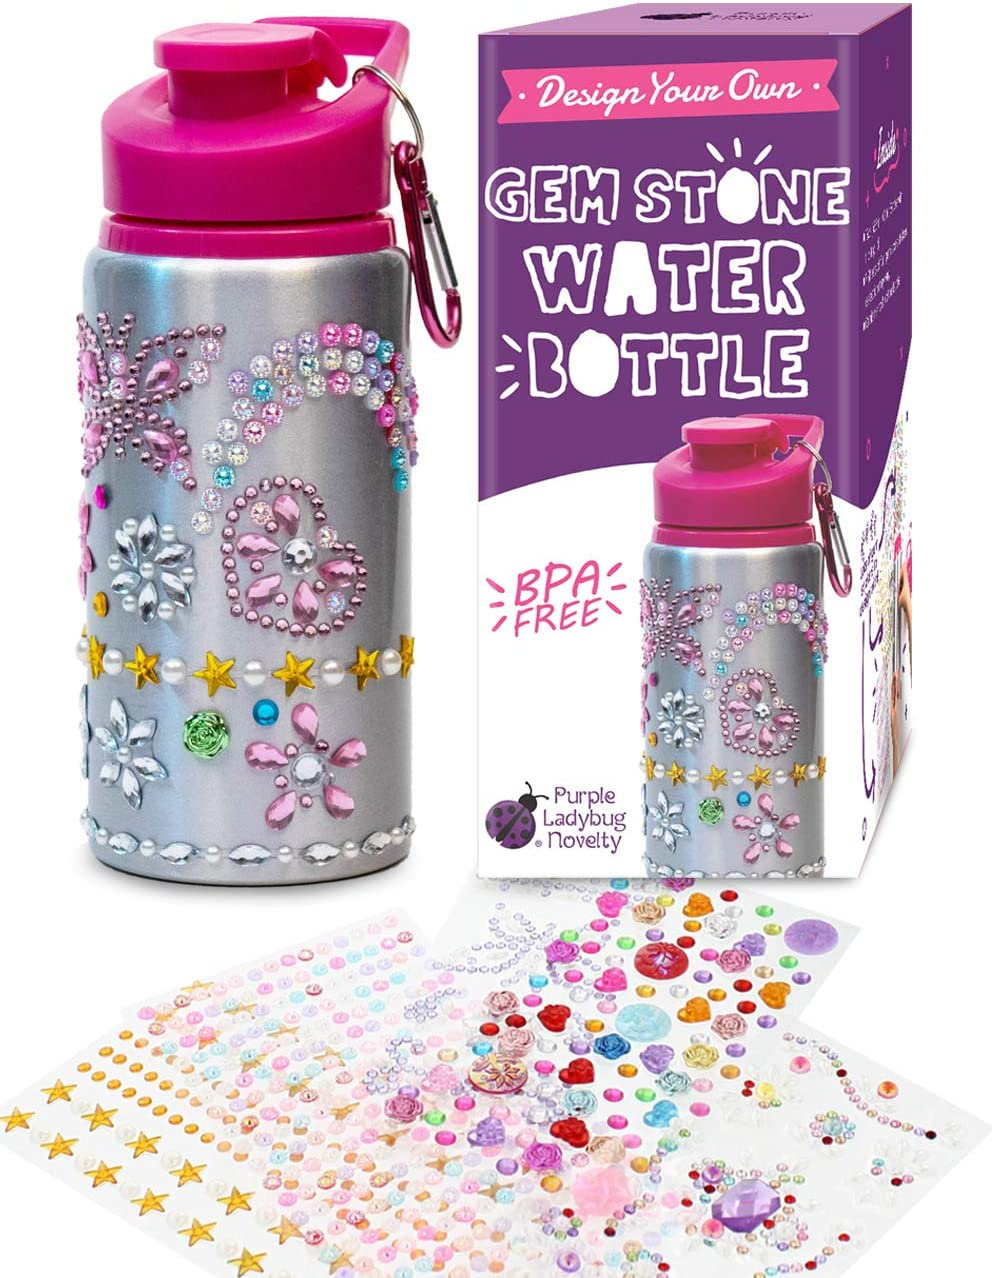 DIY Decorate and Personalize Your Own Water Bottle